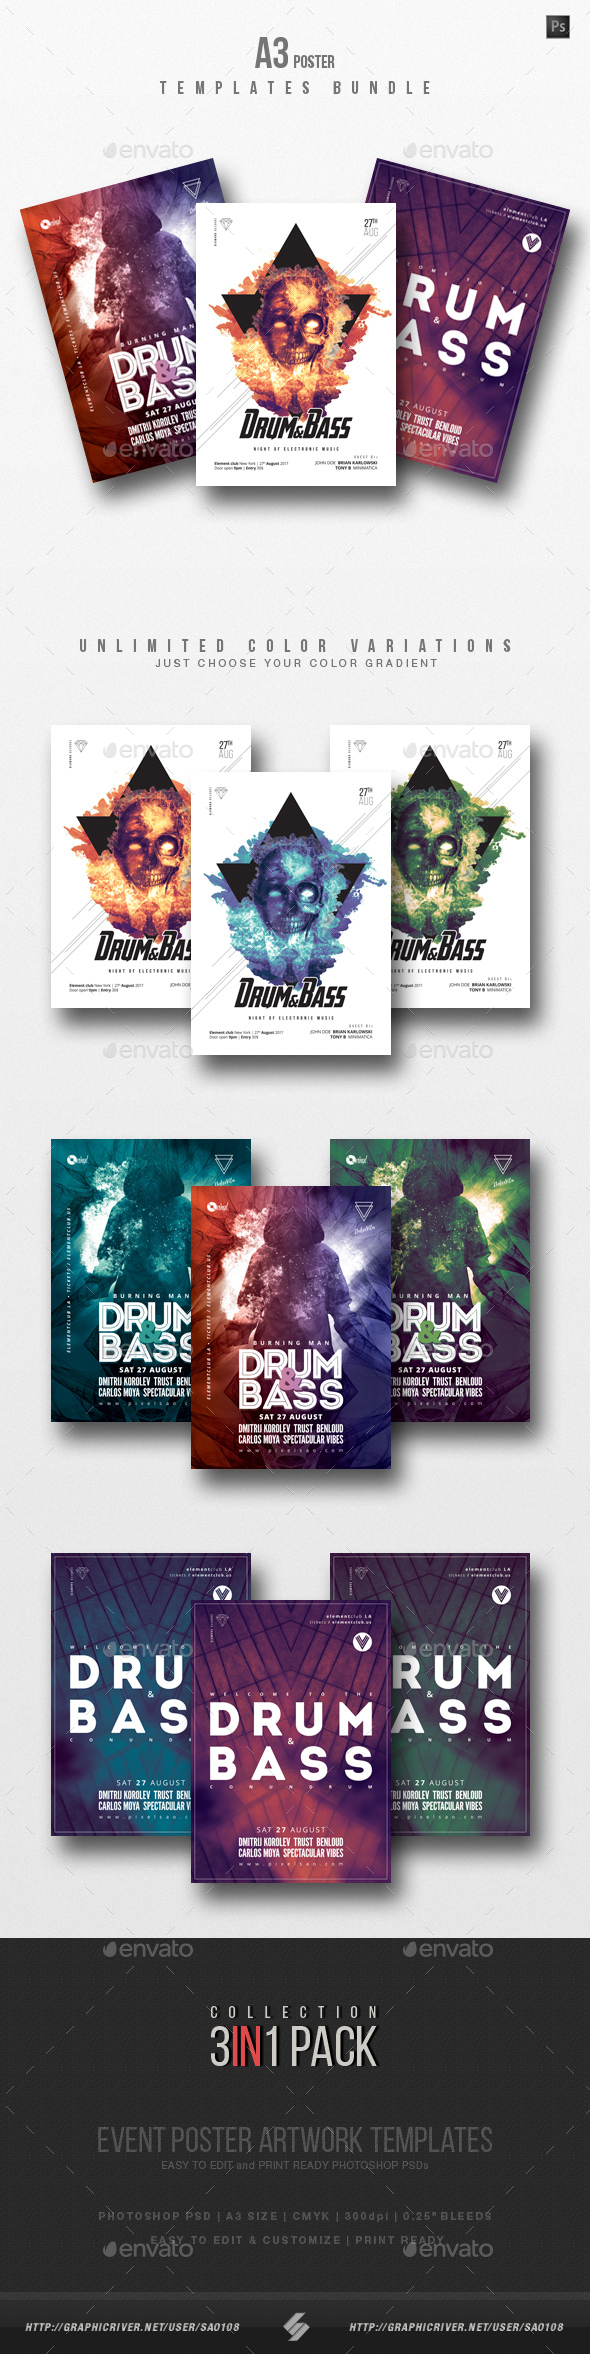 Drum and Bass Party Flyer / Poster Templates Bundle - Clubs & Parties Events